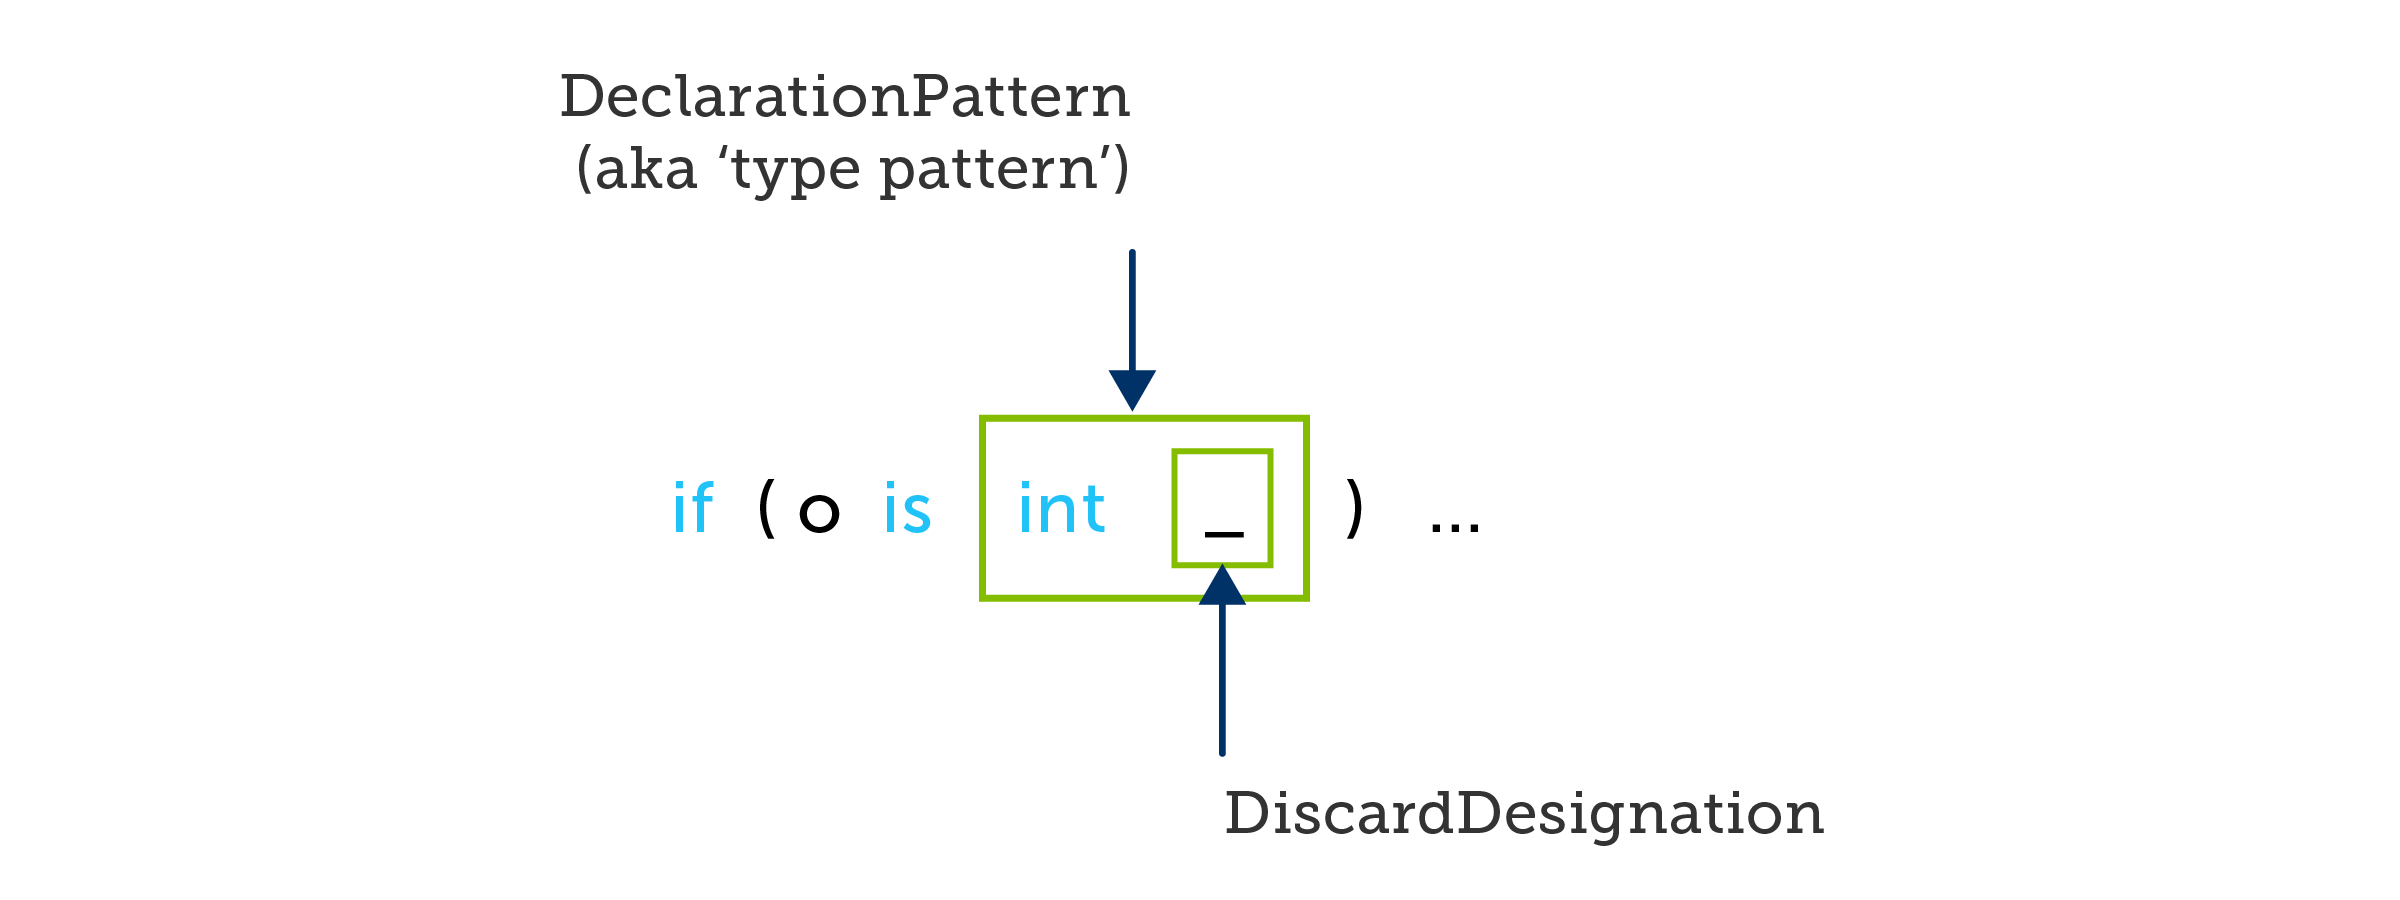 A C# if statement using a type pattern that discards its value